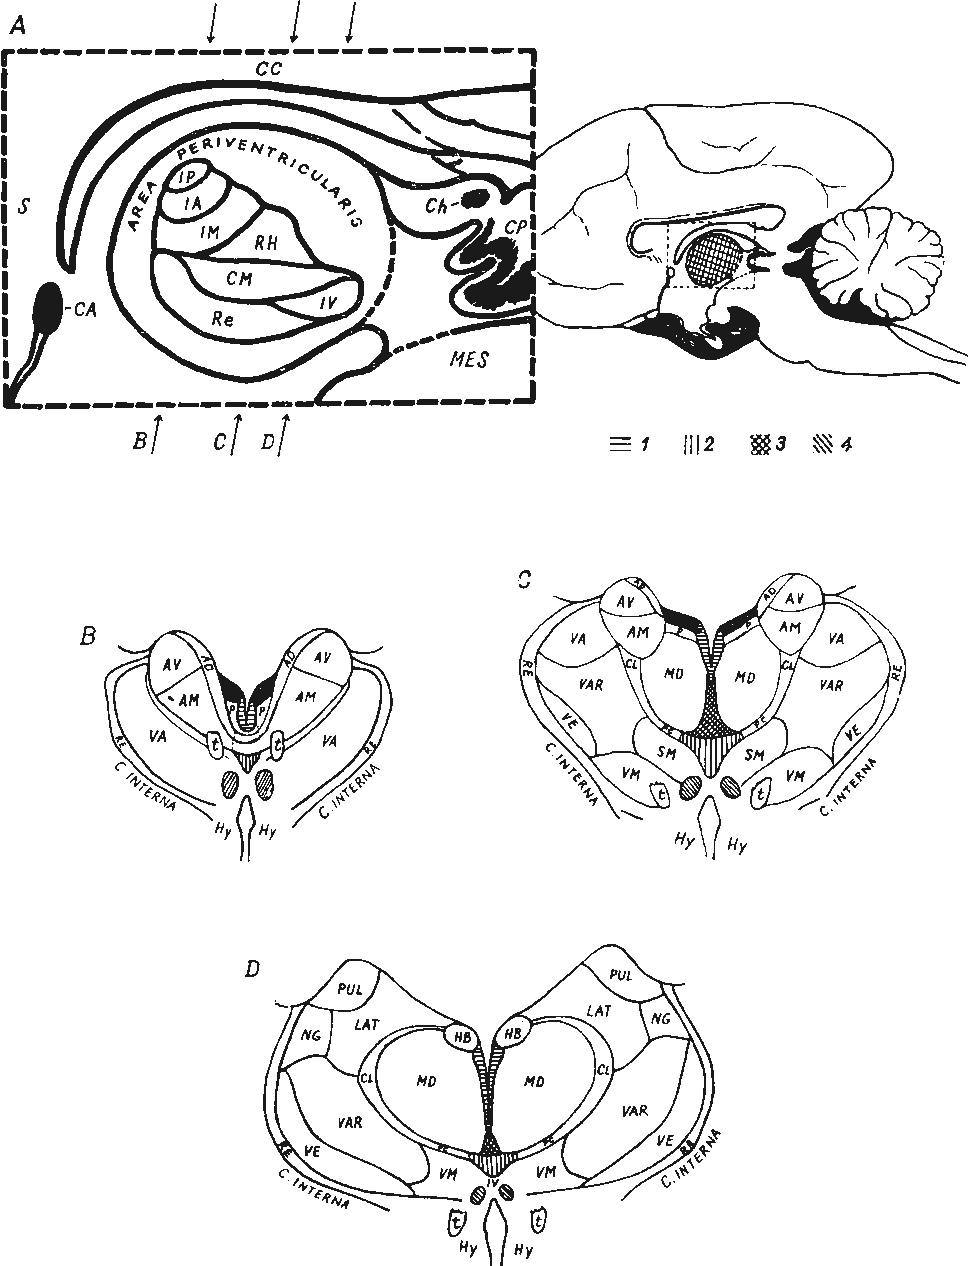 hight resolution of diagram of the topographical relations of the mid line thalamic